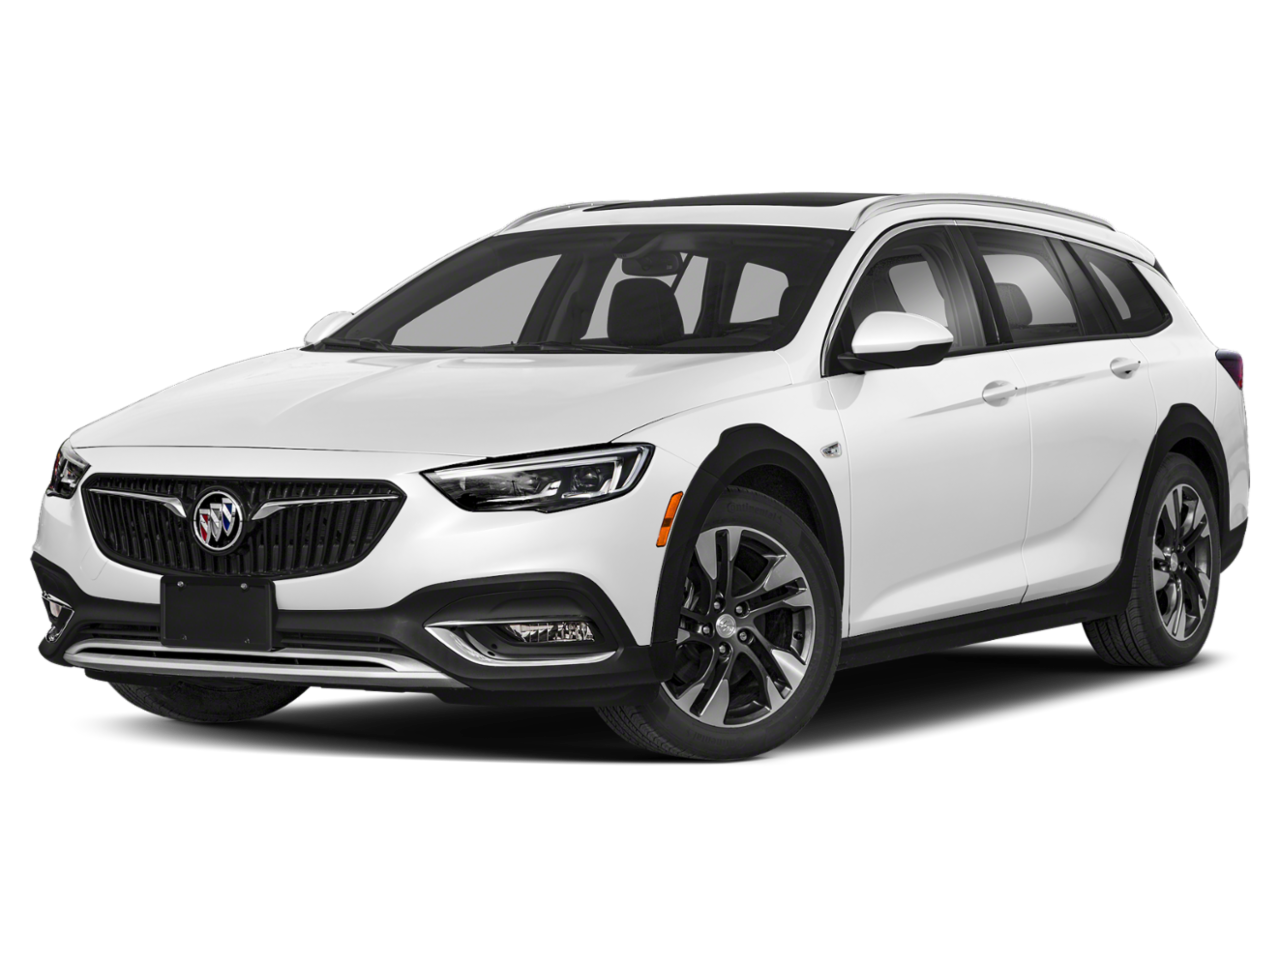 Buick 2020 Regal TourX AWD